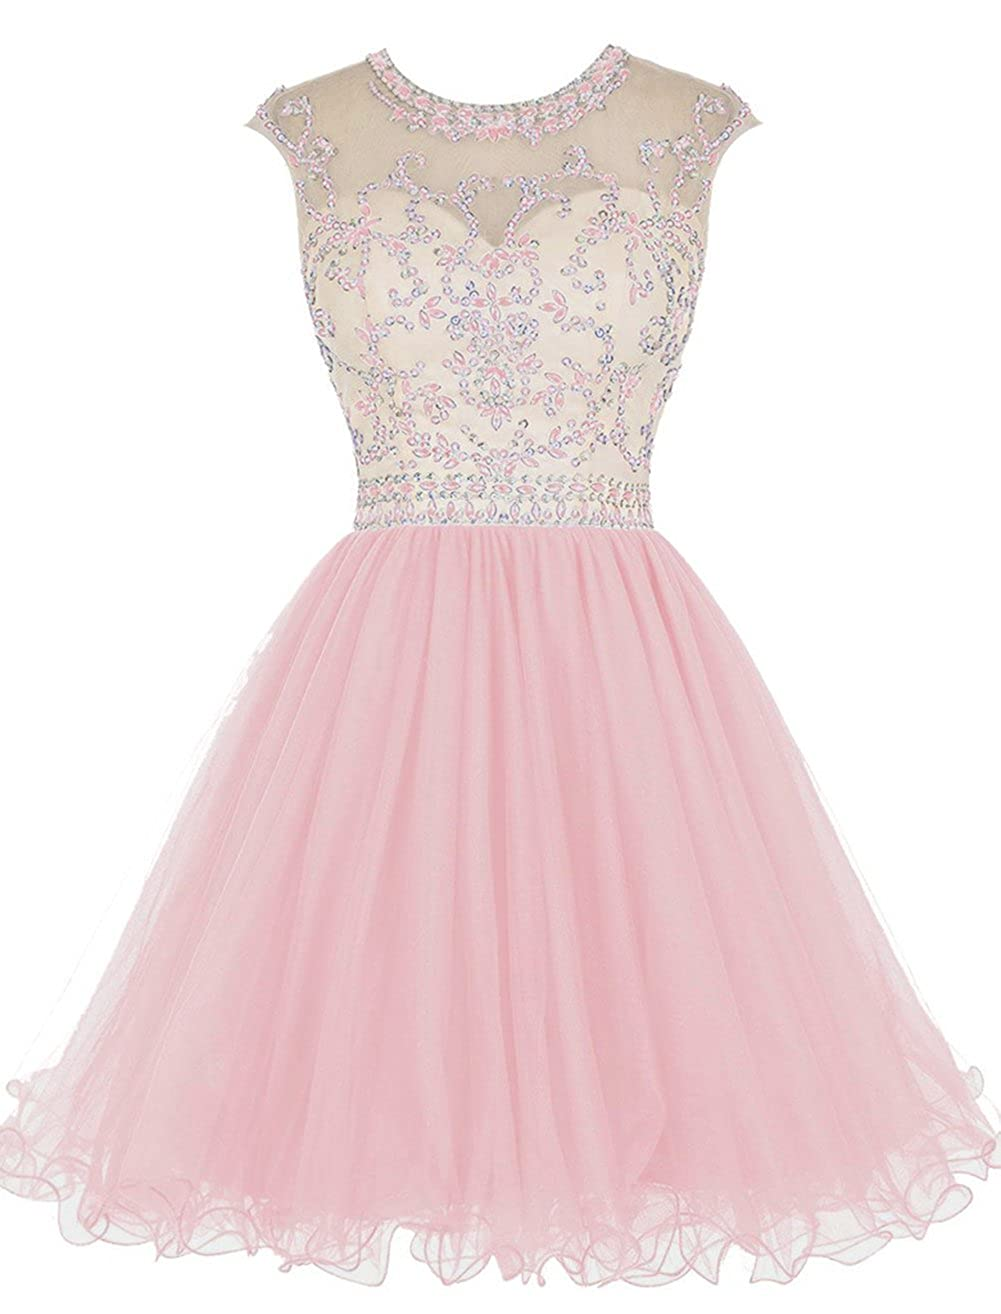 Pink Caissen Women's Short Beaded Sheer Crew Neck Rhinestones Tulle Prom Dress Open Back with Zipper Party Wear Ball Gown